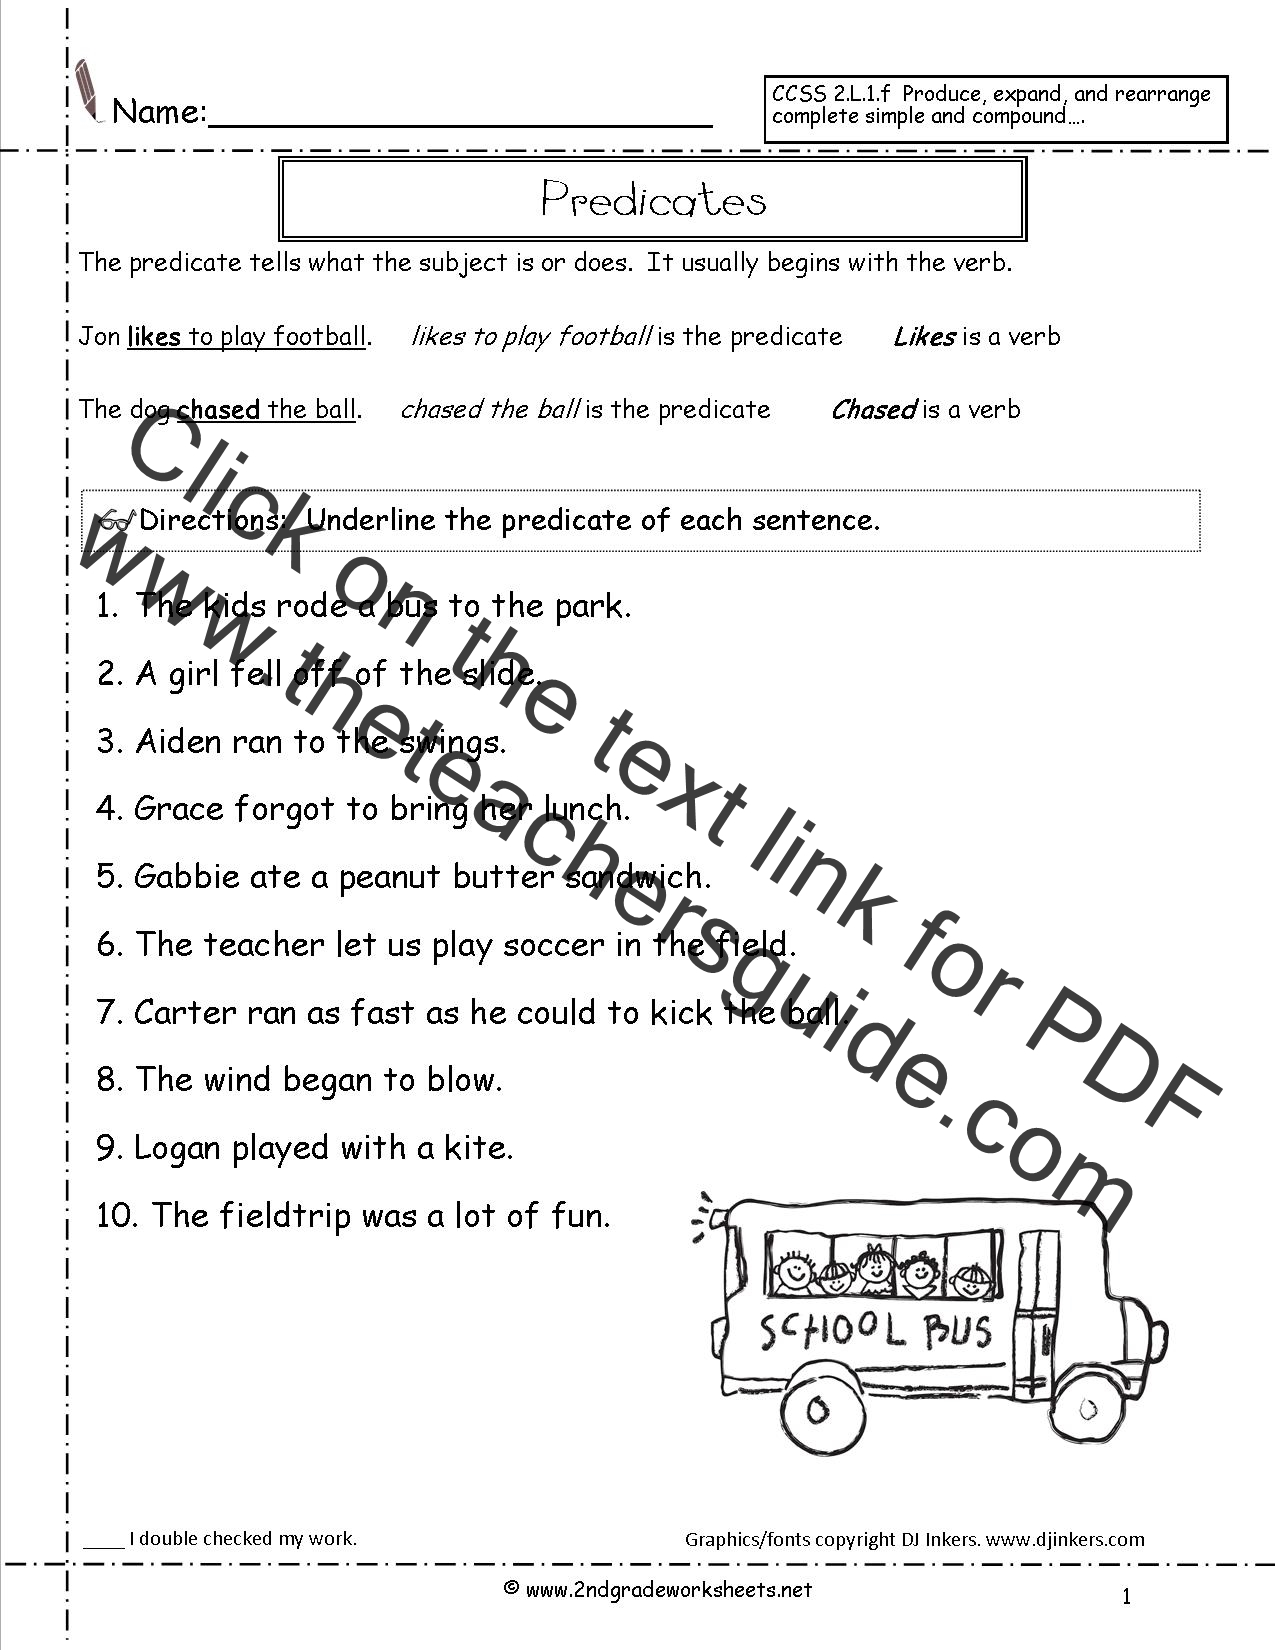 Worksheets Four Kinds Of Sentences Worksheet second grade sentences worksheets ccss 2 l 1 f sentence worksheet predicates